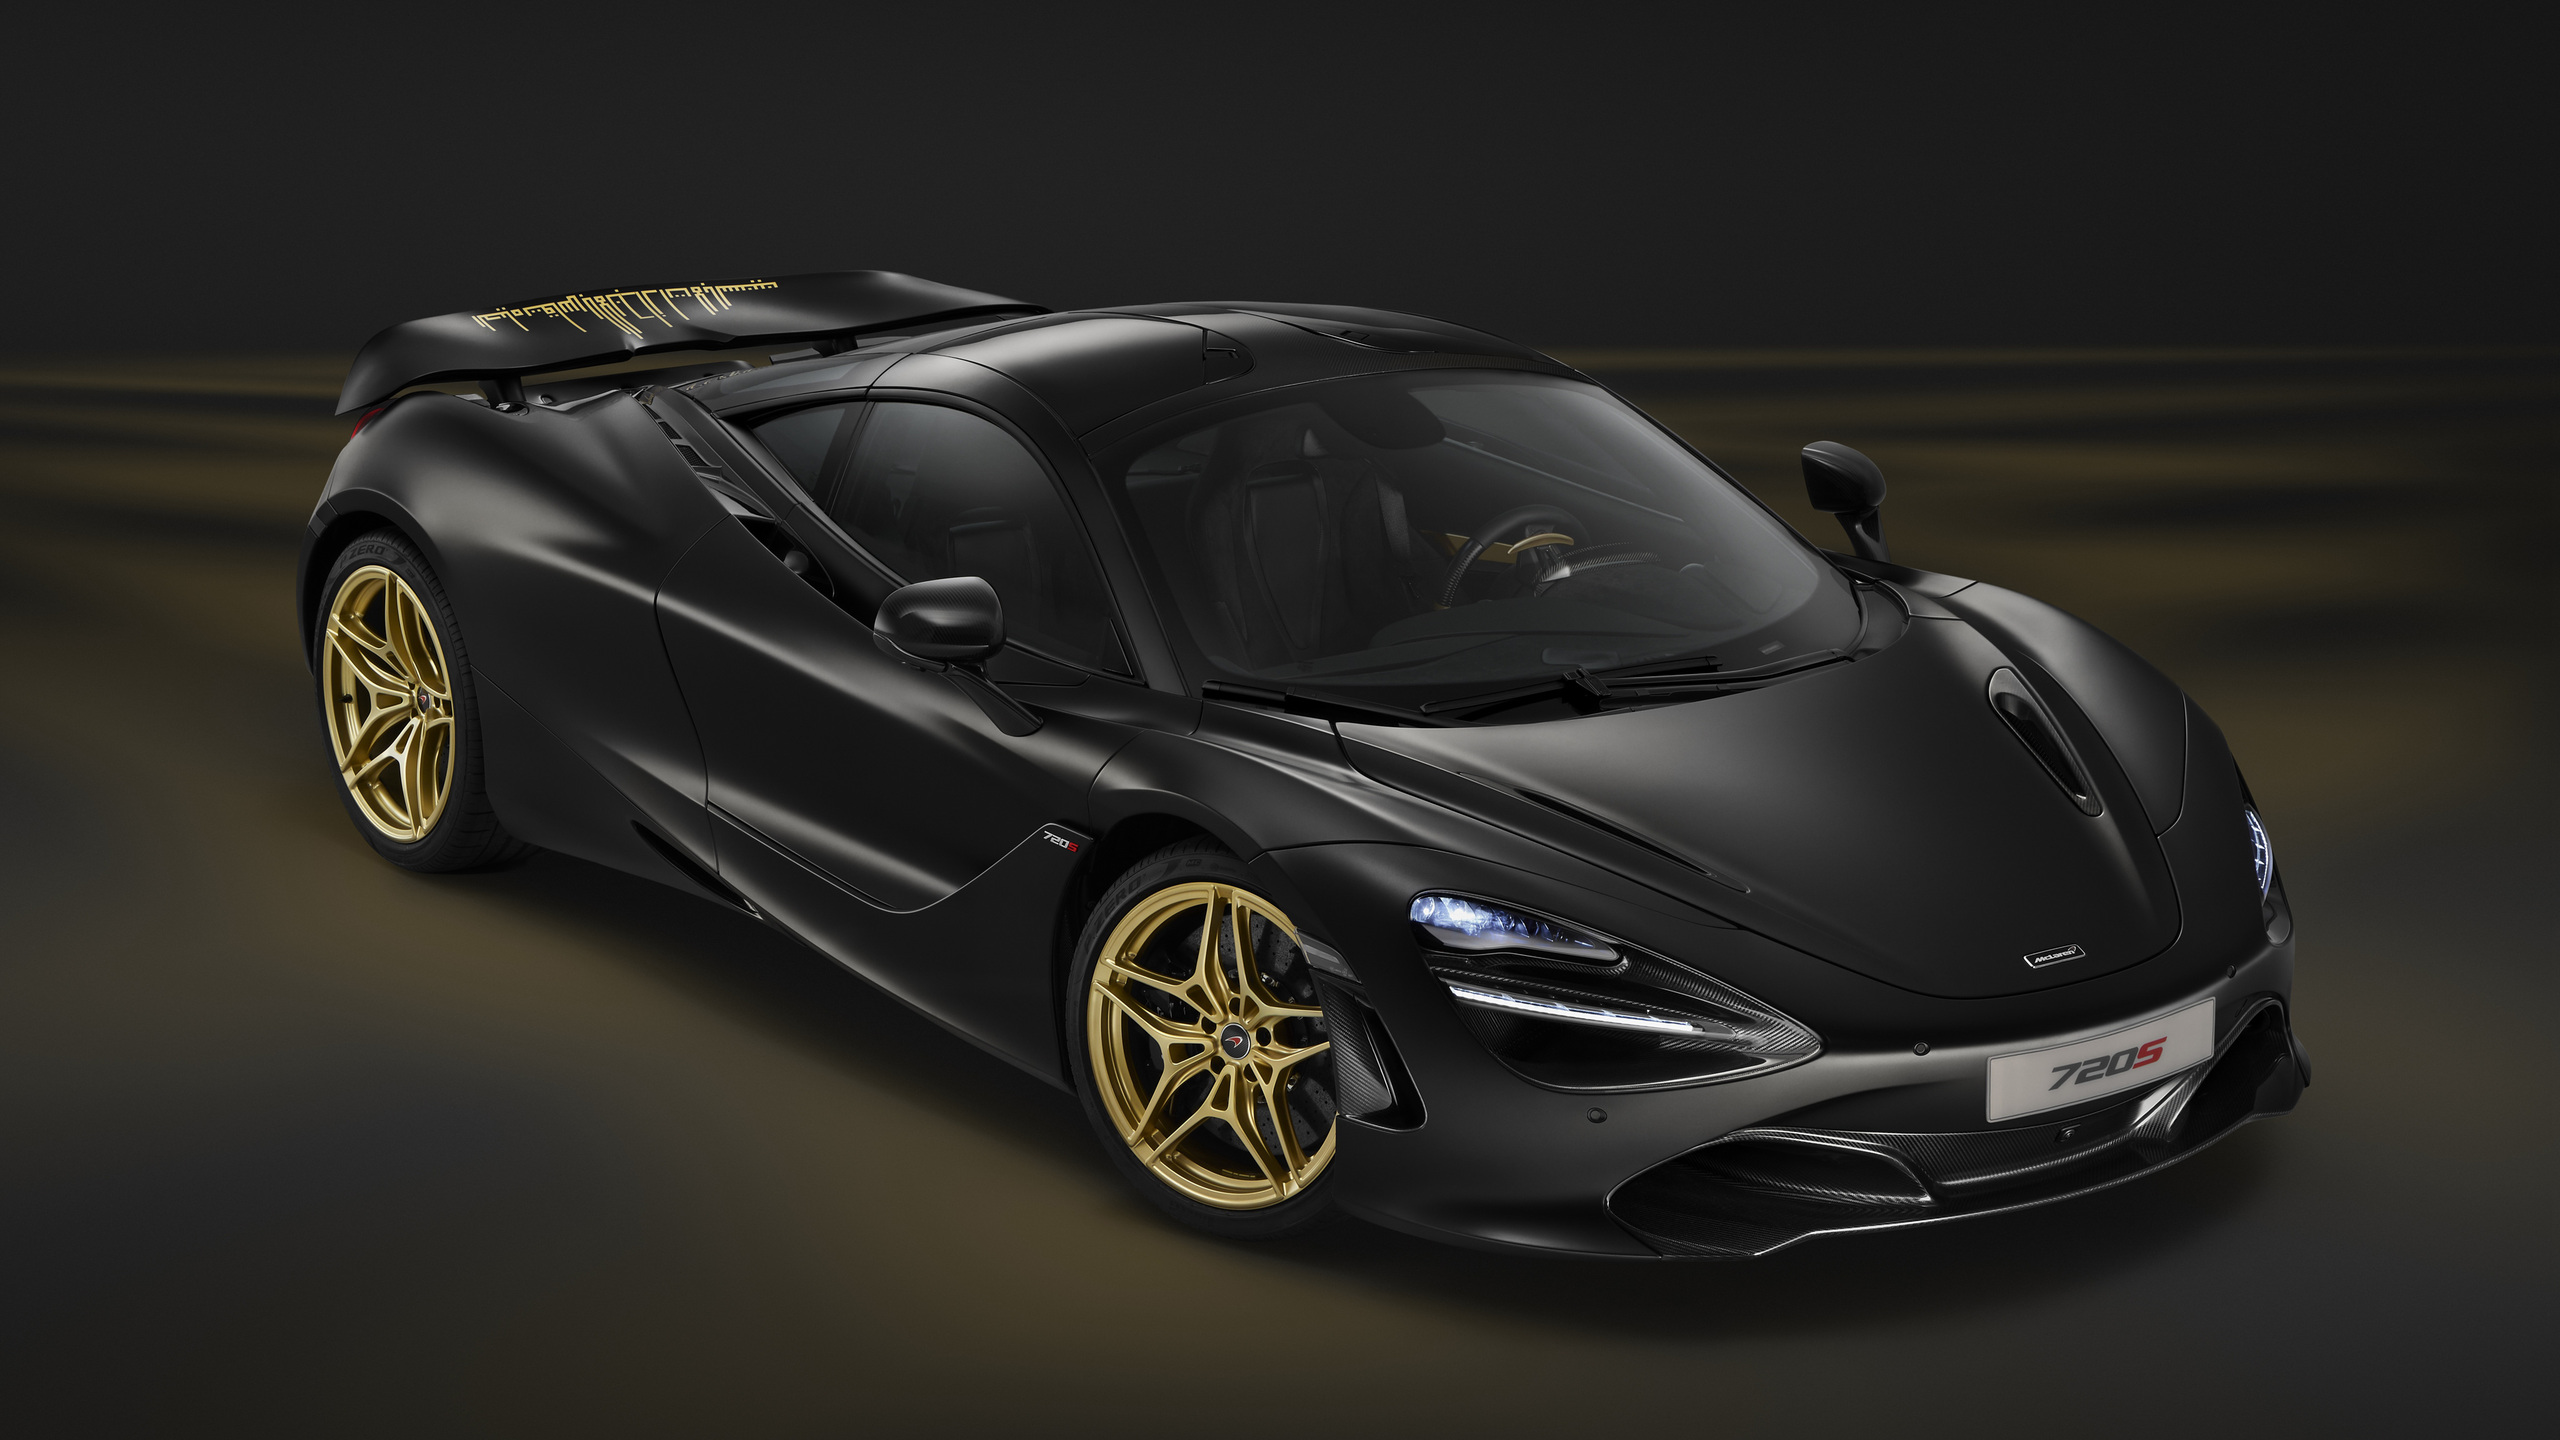 2560x1440 Mclaren 720s Dubai 2017 1440p Resolution Hd 4k Wallpapers Images Backgrounds Photos And Pictures